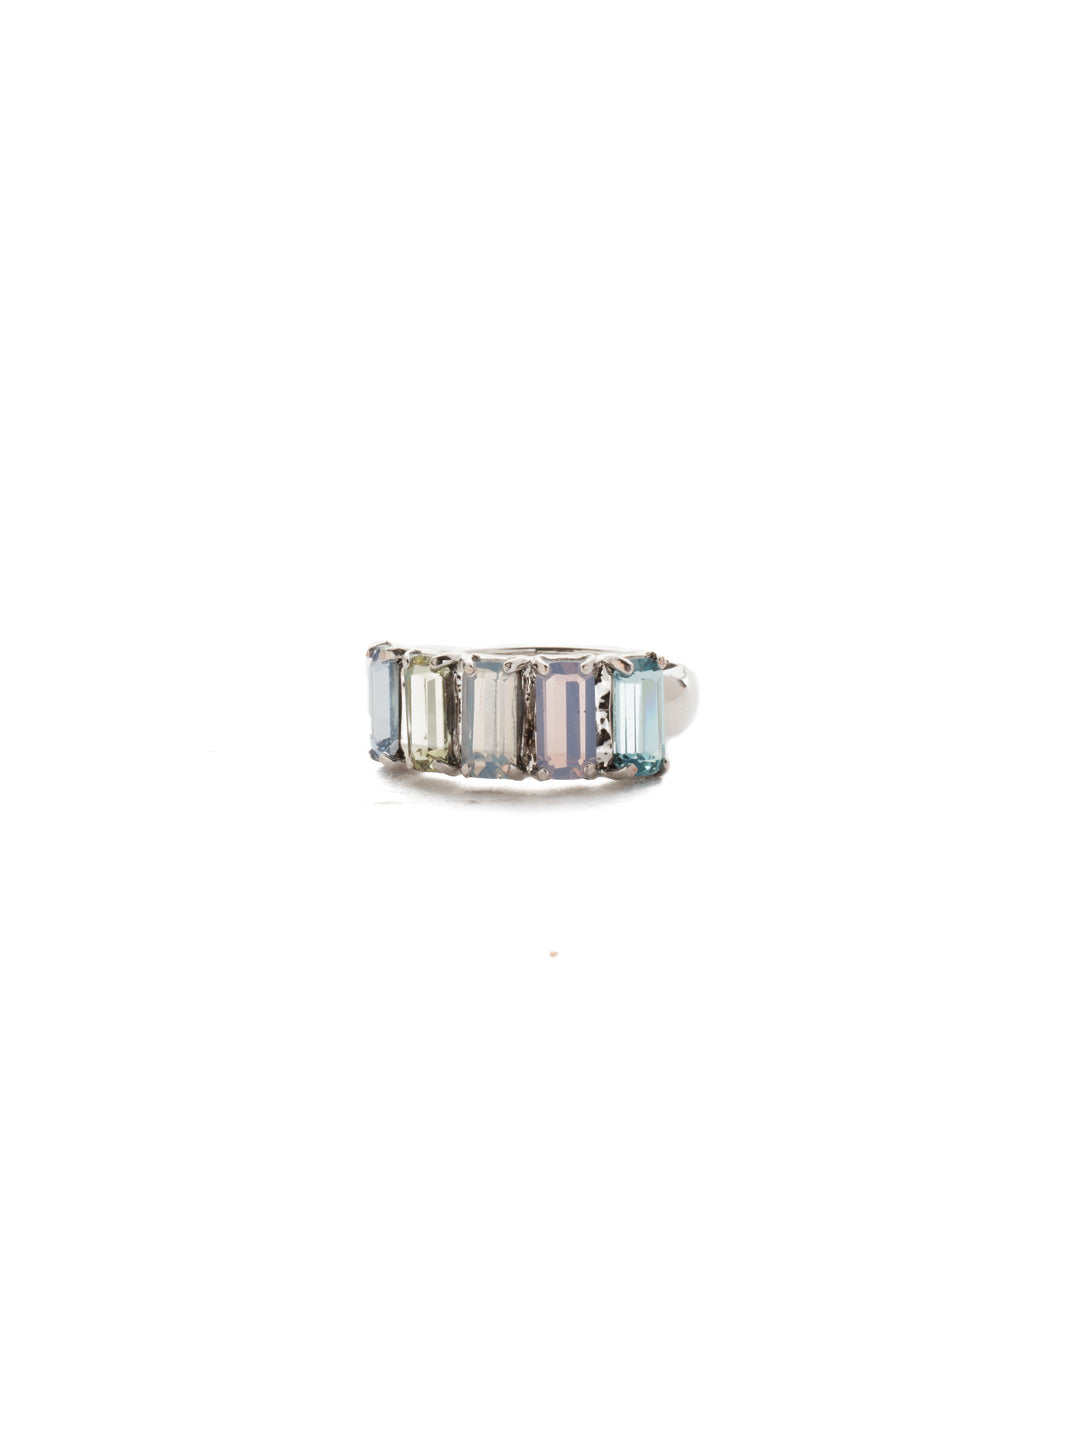 Arden Band Ring - REF29RHSSU